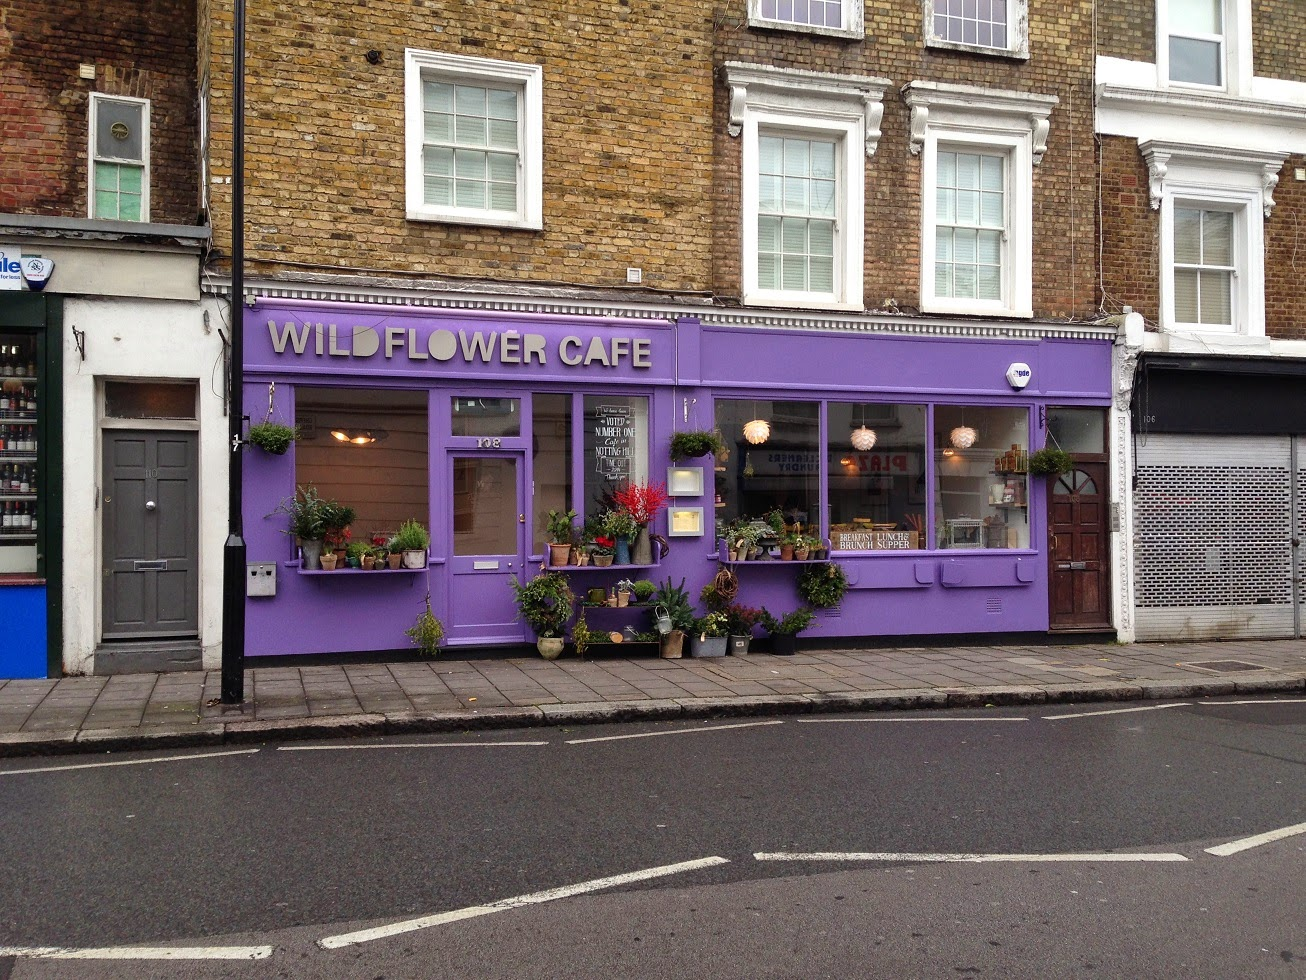 Wildflower Café, Chepstow Road, London W2